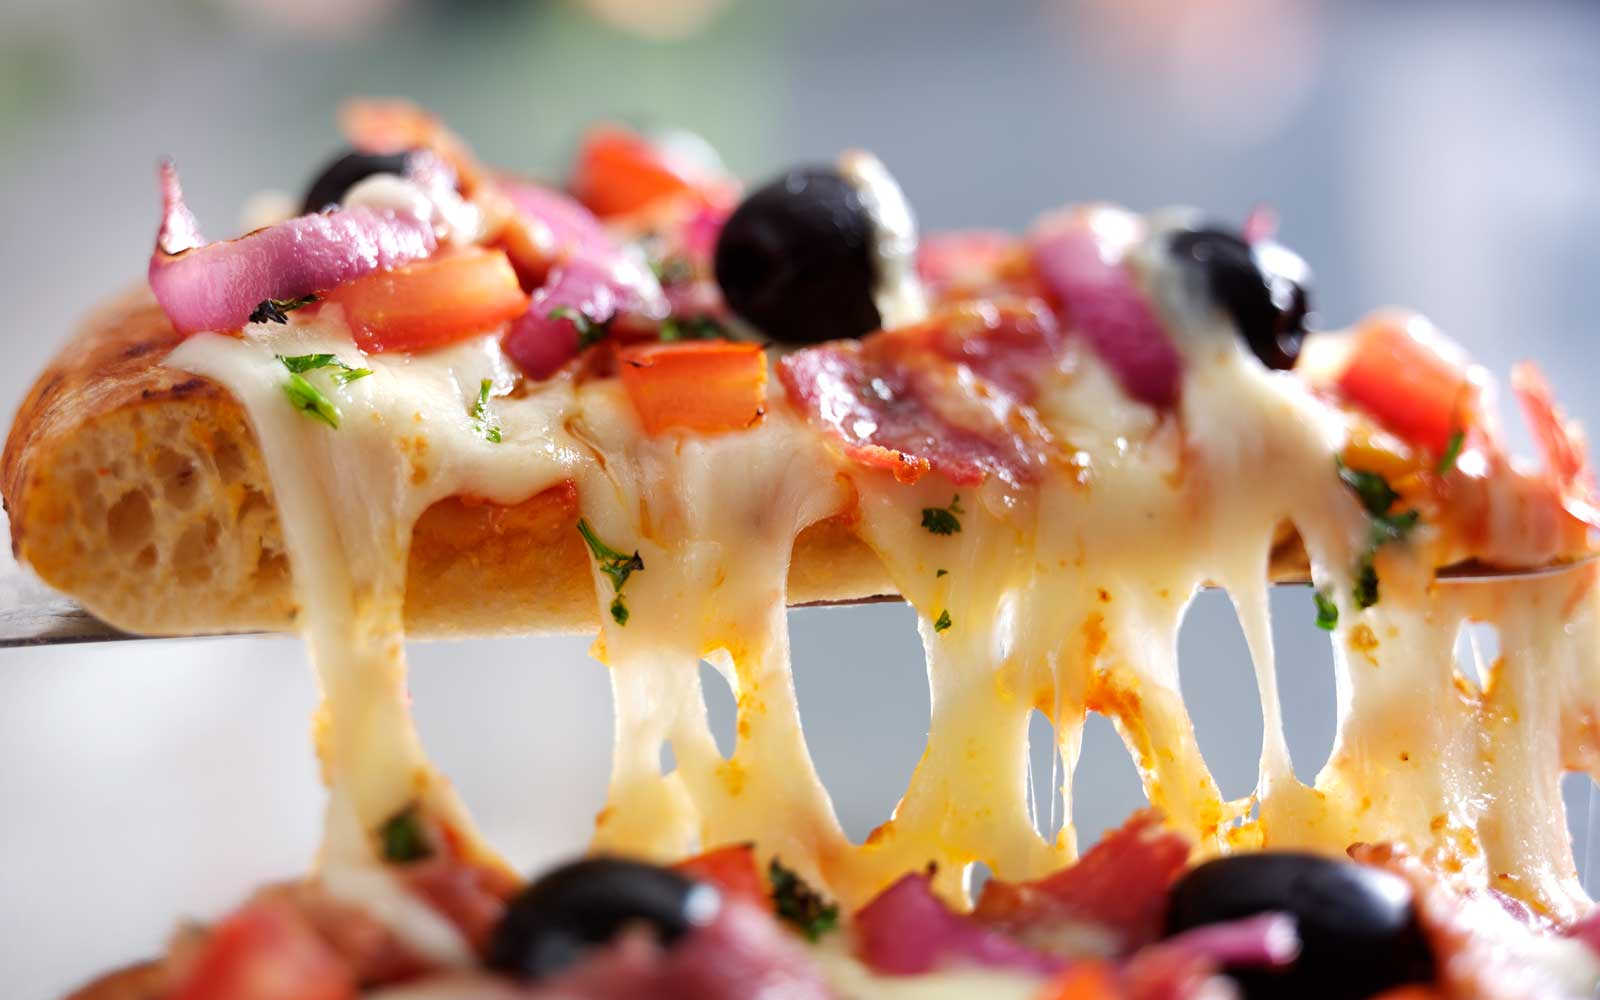 You could get paid up to $1,000 a day to make and taste pizzas.